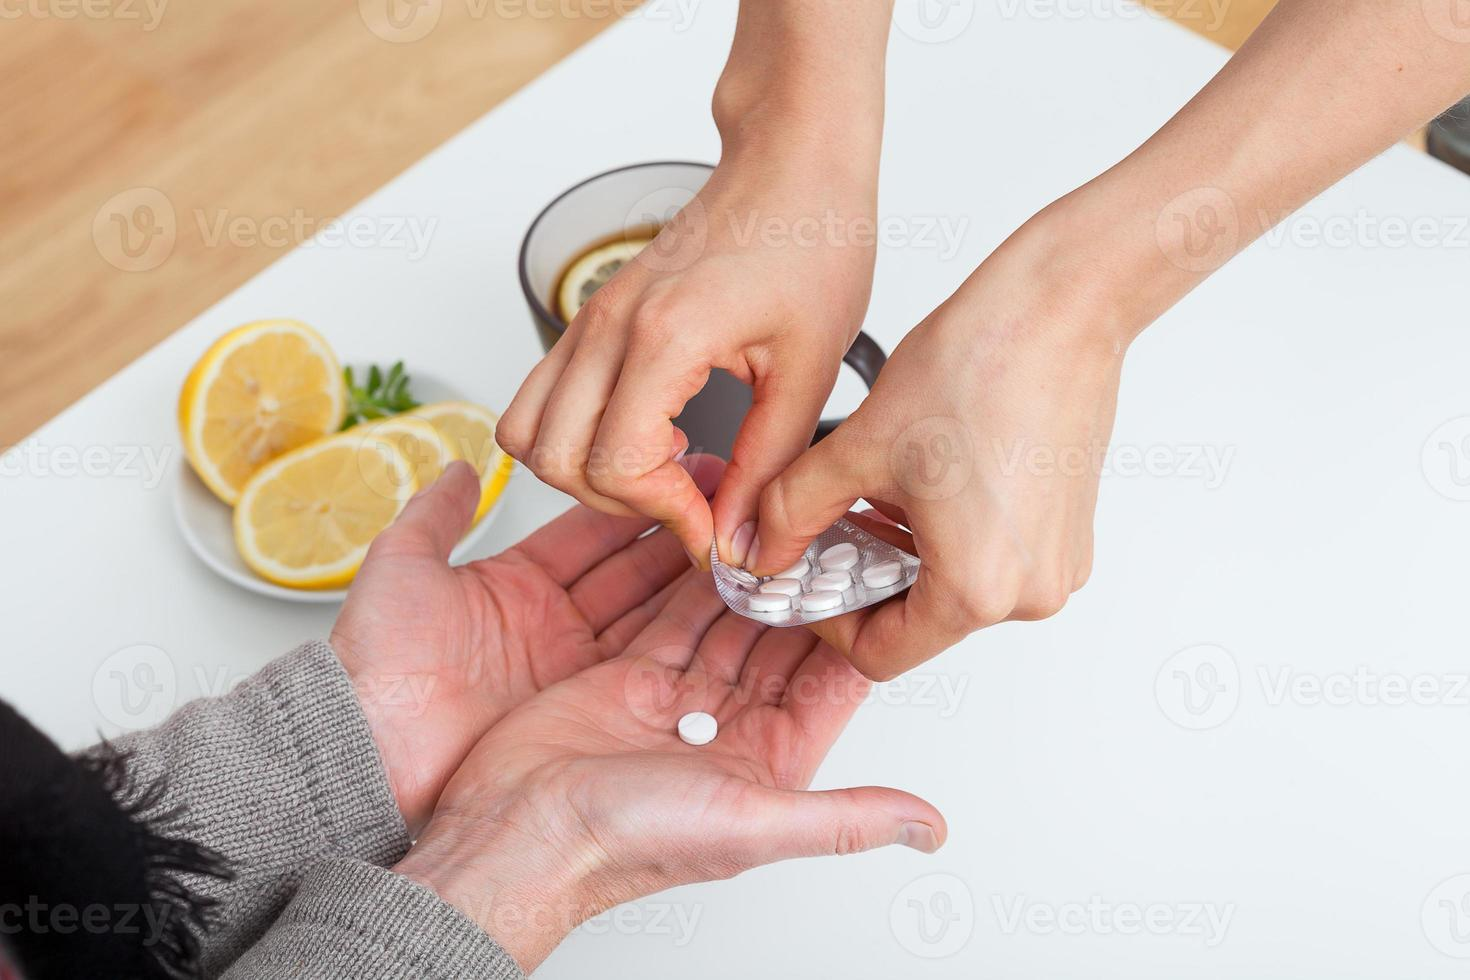 Giving medicine to a patient photo